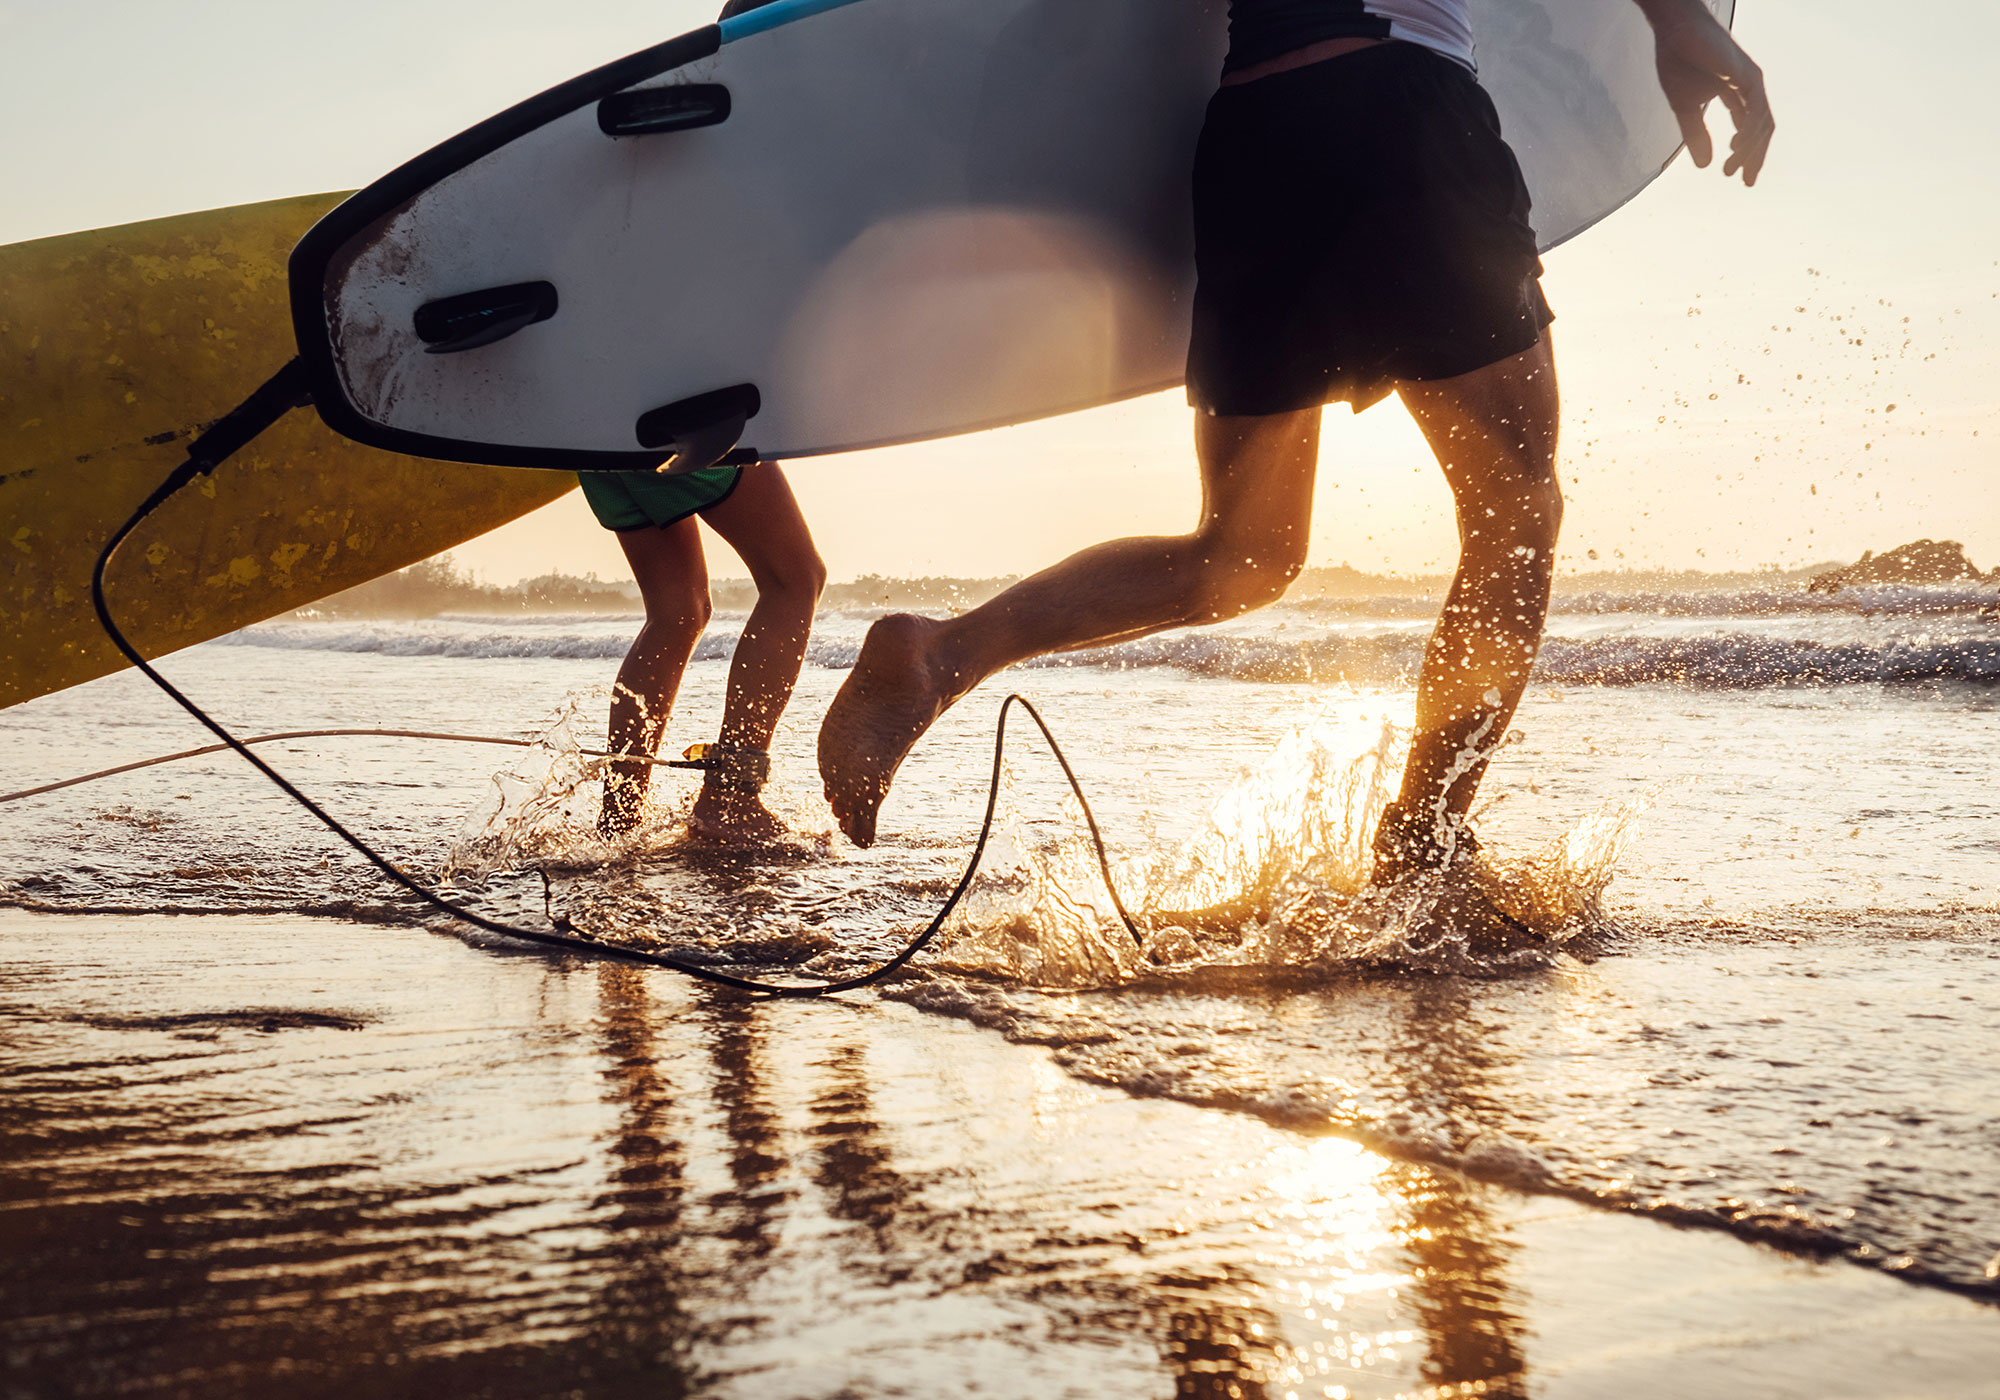 Shallow water at the beach with two men running into the water with surfboards